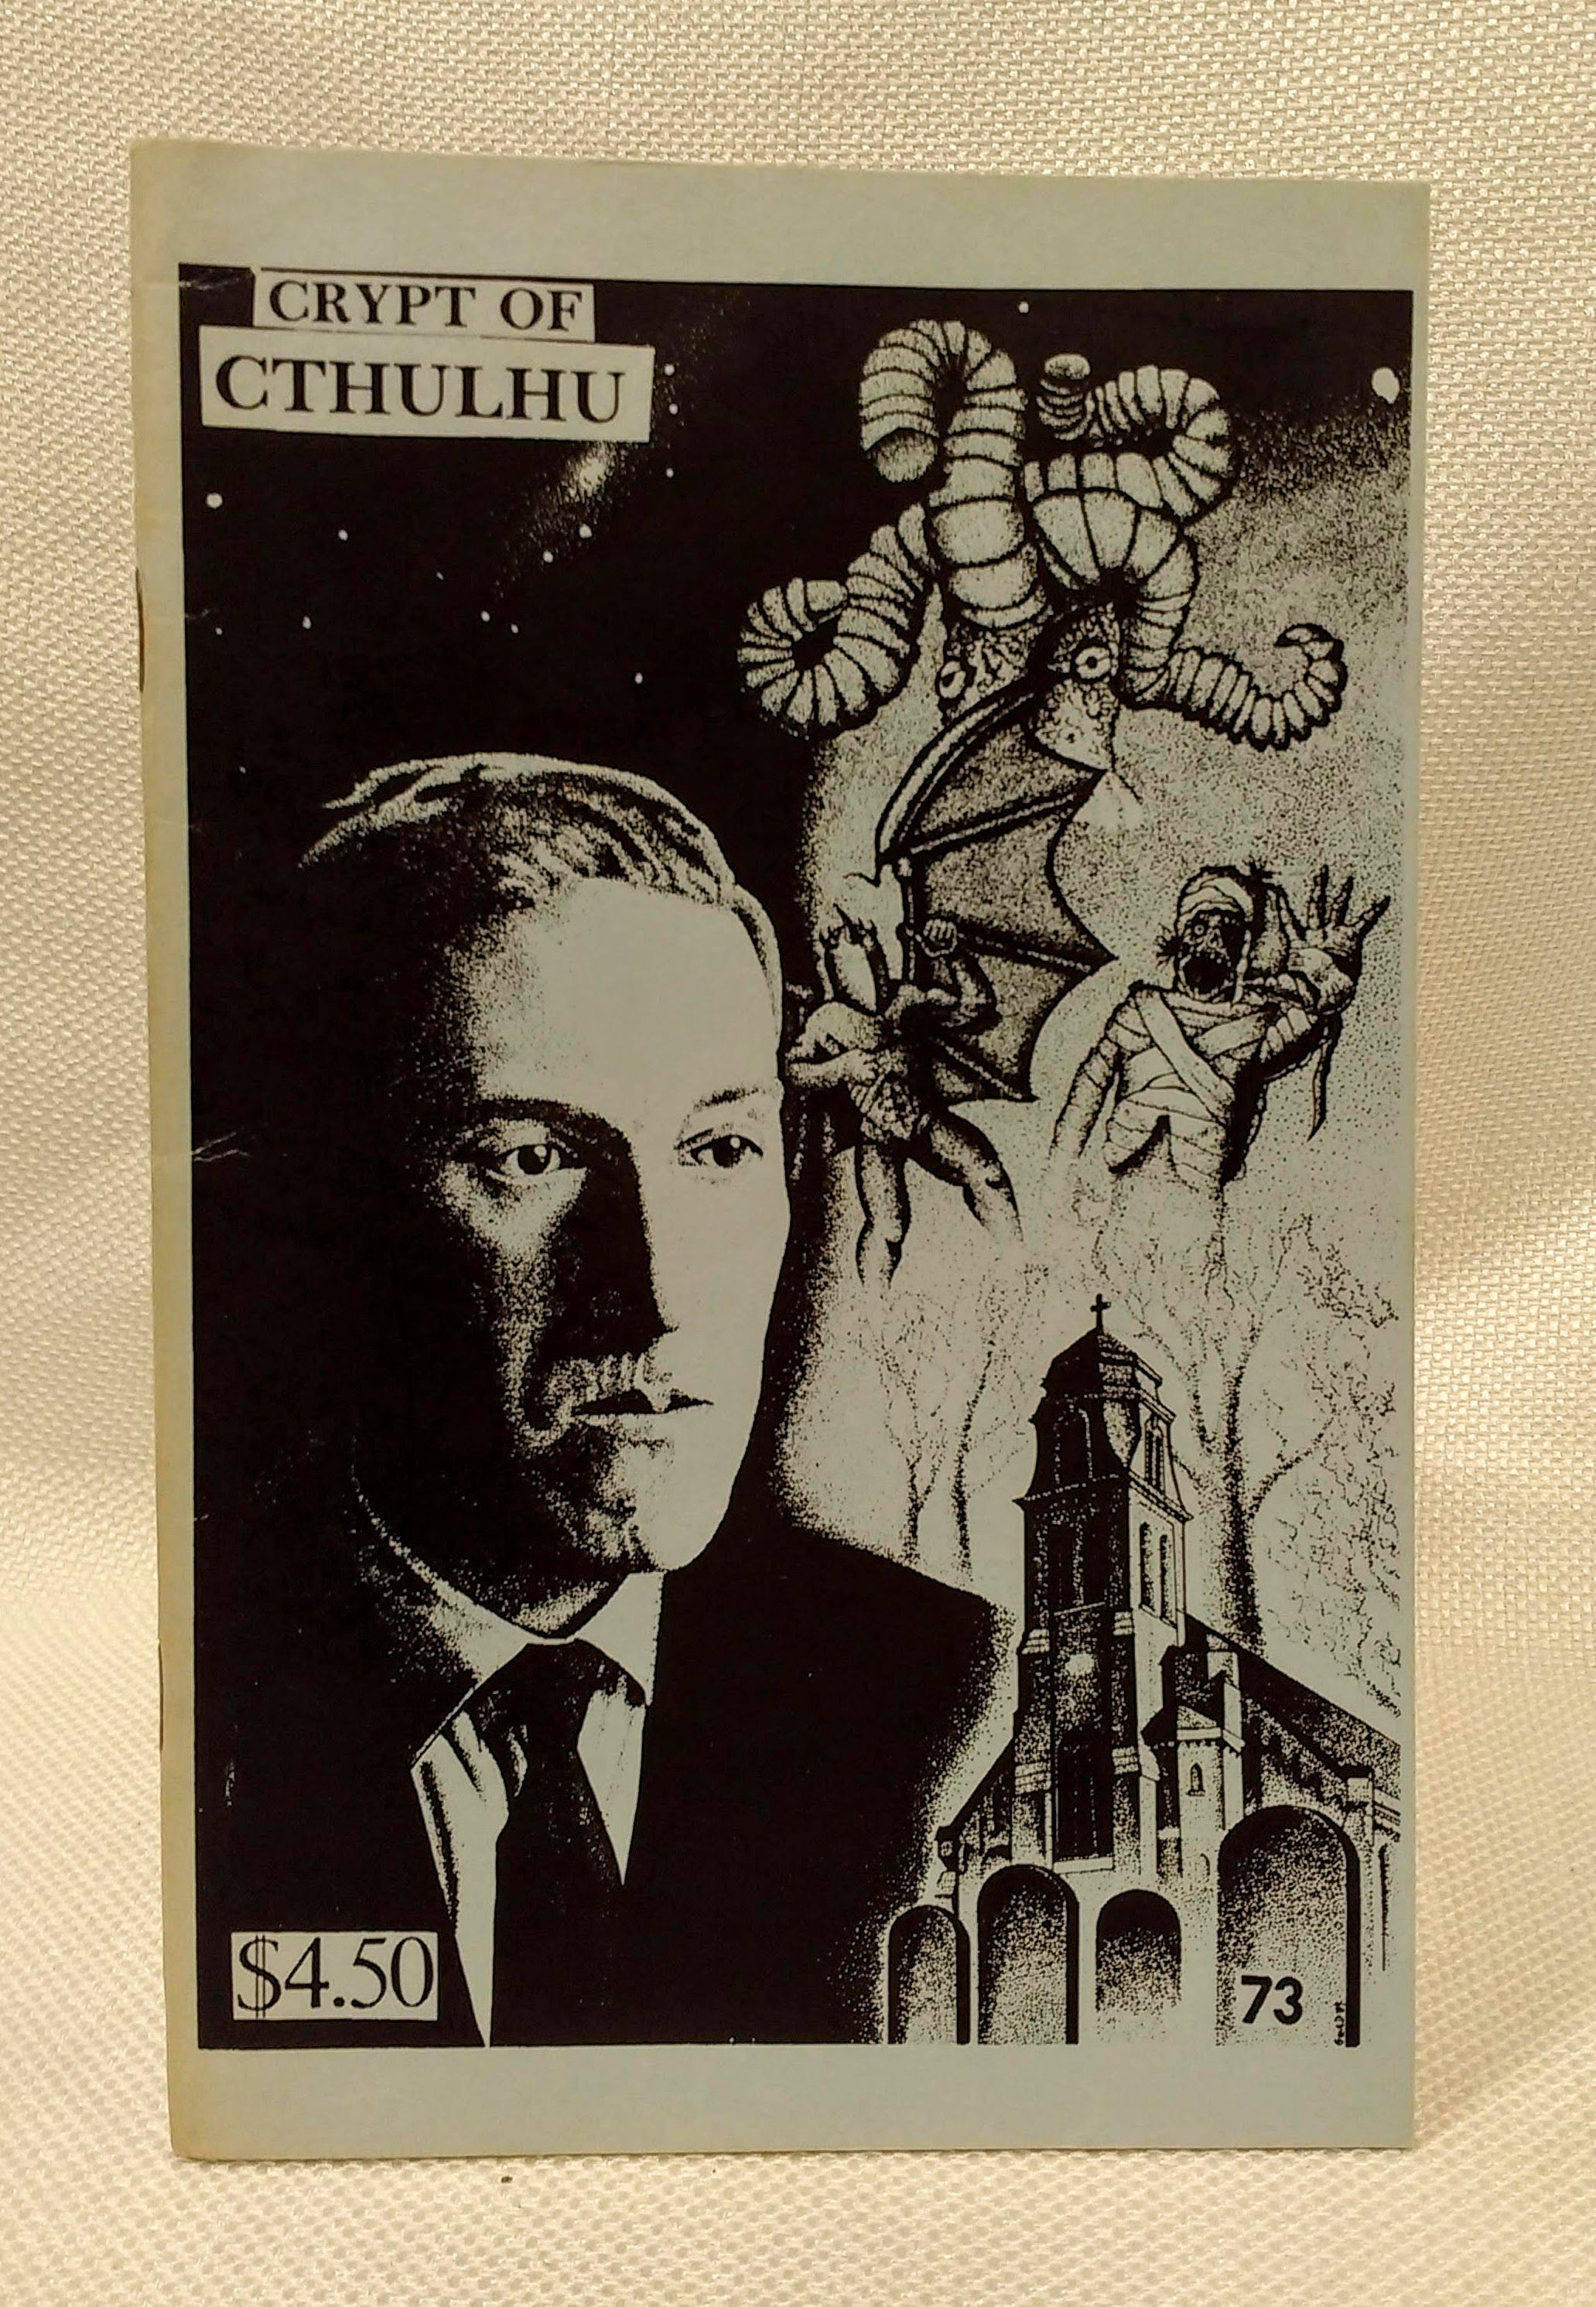 Crypt of Cthulu; A Pulp Thriller and Theological Journal: #73 (St. John's Eve 1990), Price, Robert M. [Editor]